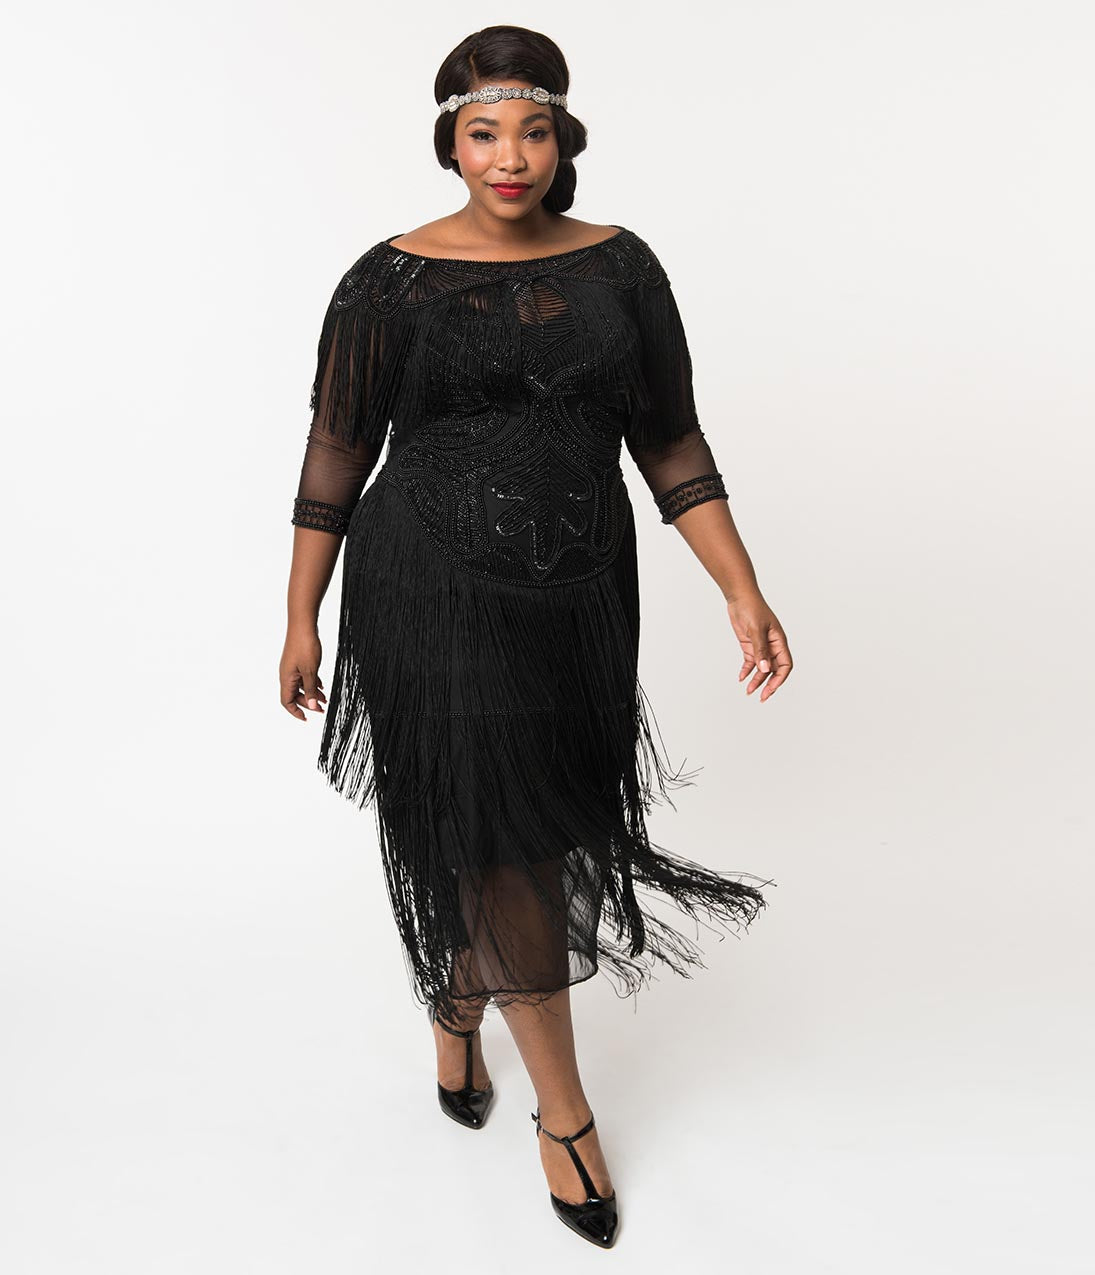 682c900c169 1920s Plus Size Flapper Dresses